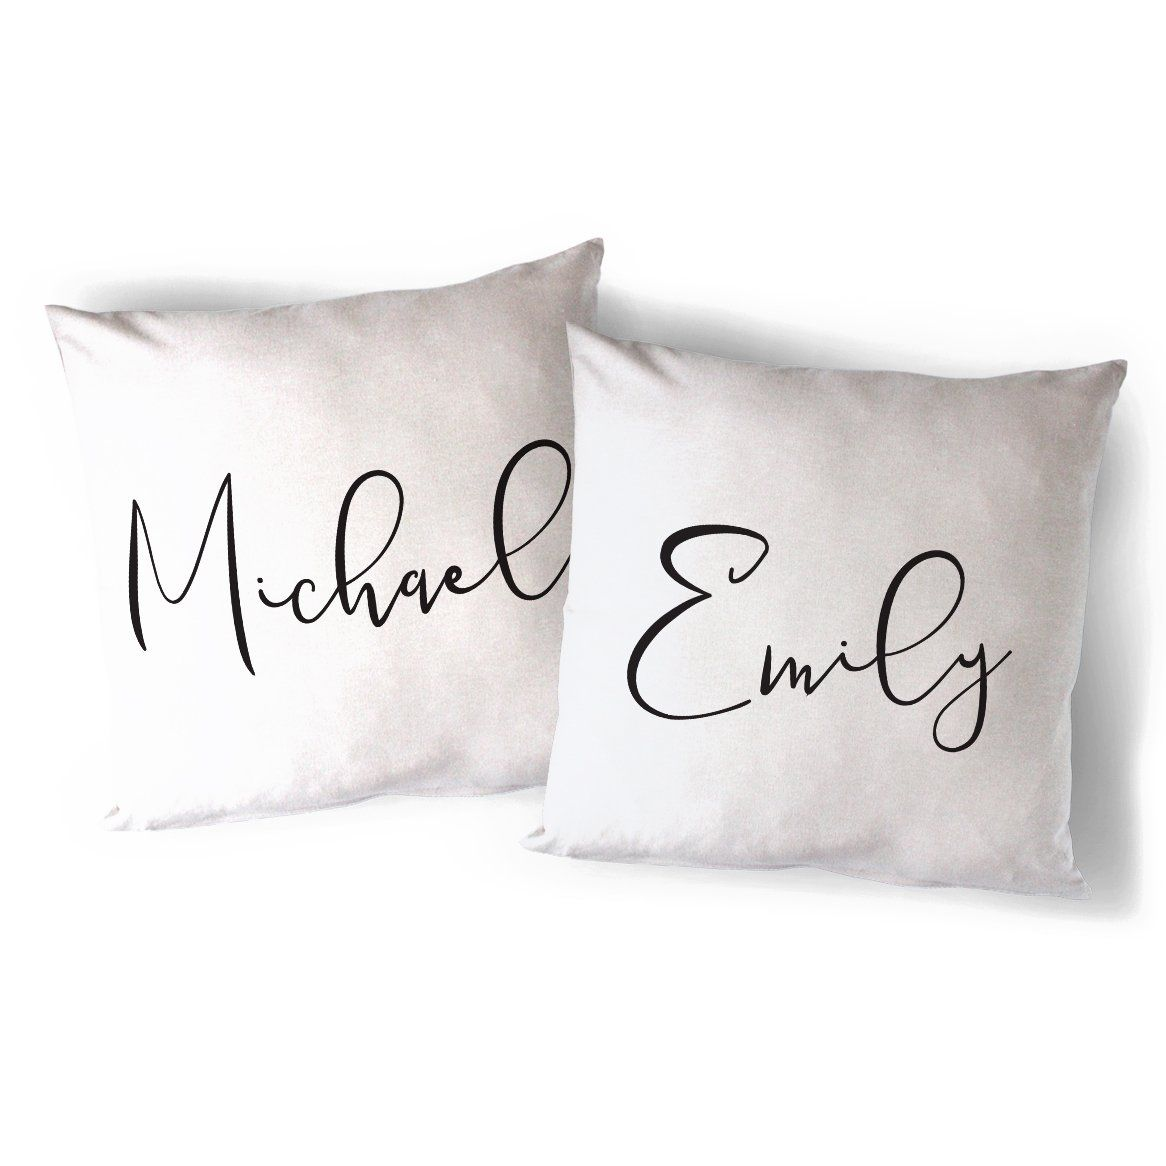 Personalized Couple Names Pillow Cover 2-Pack - Default Title